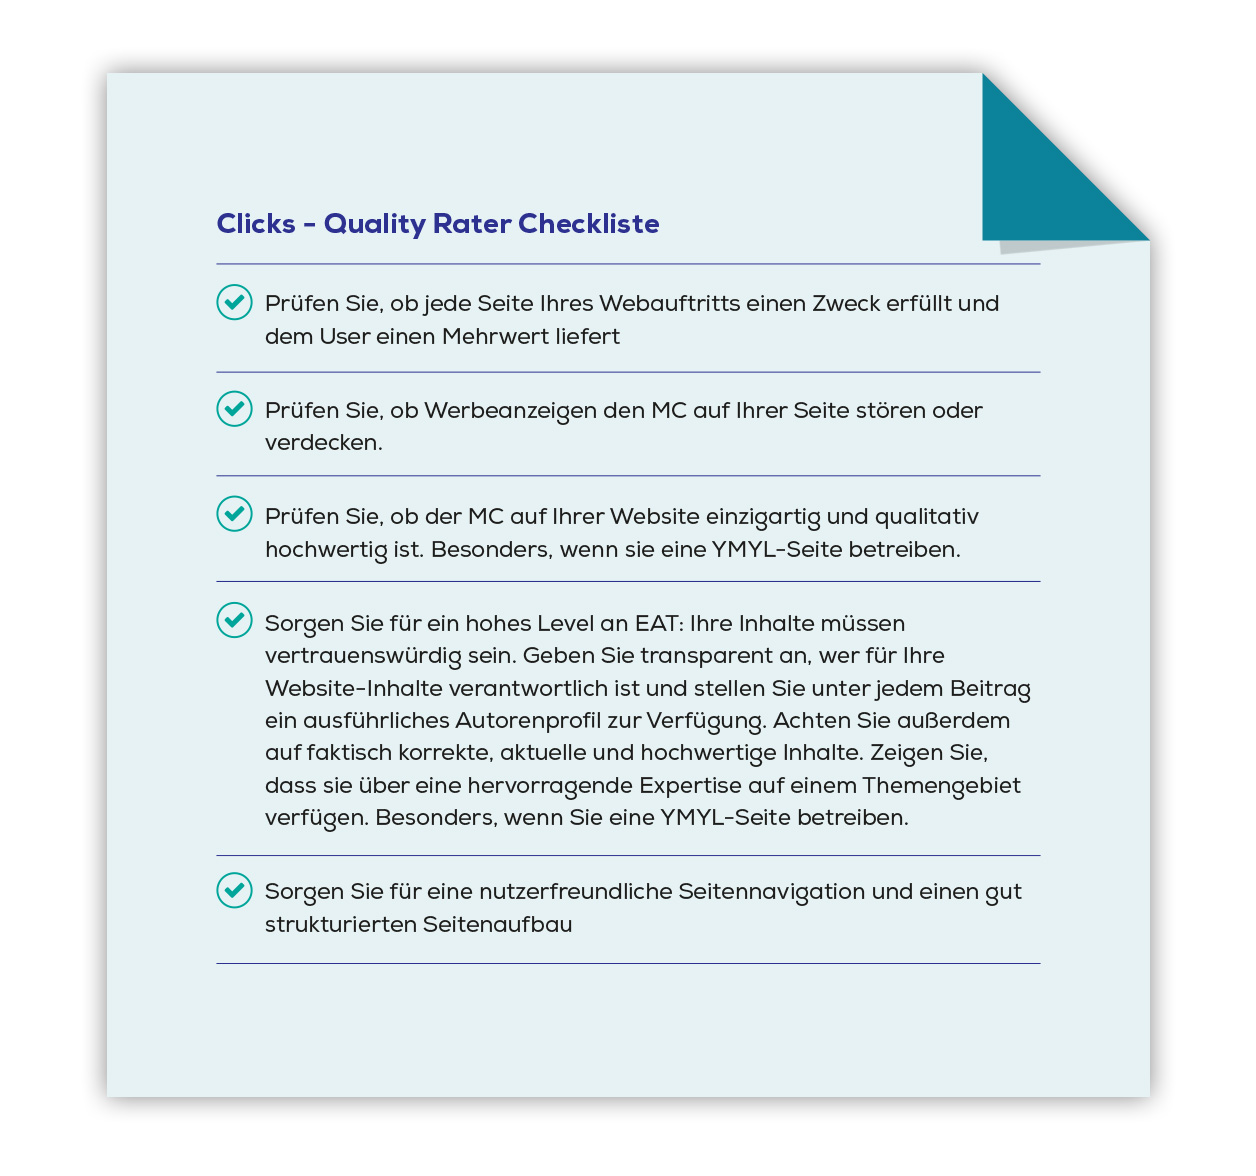 Checklist: Quality Rater Guideline